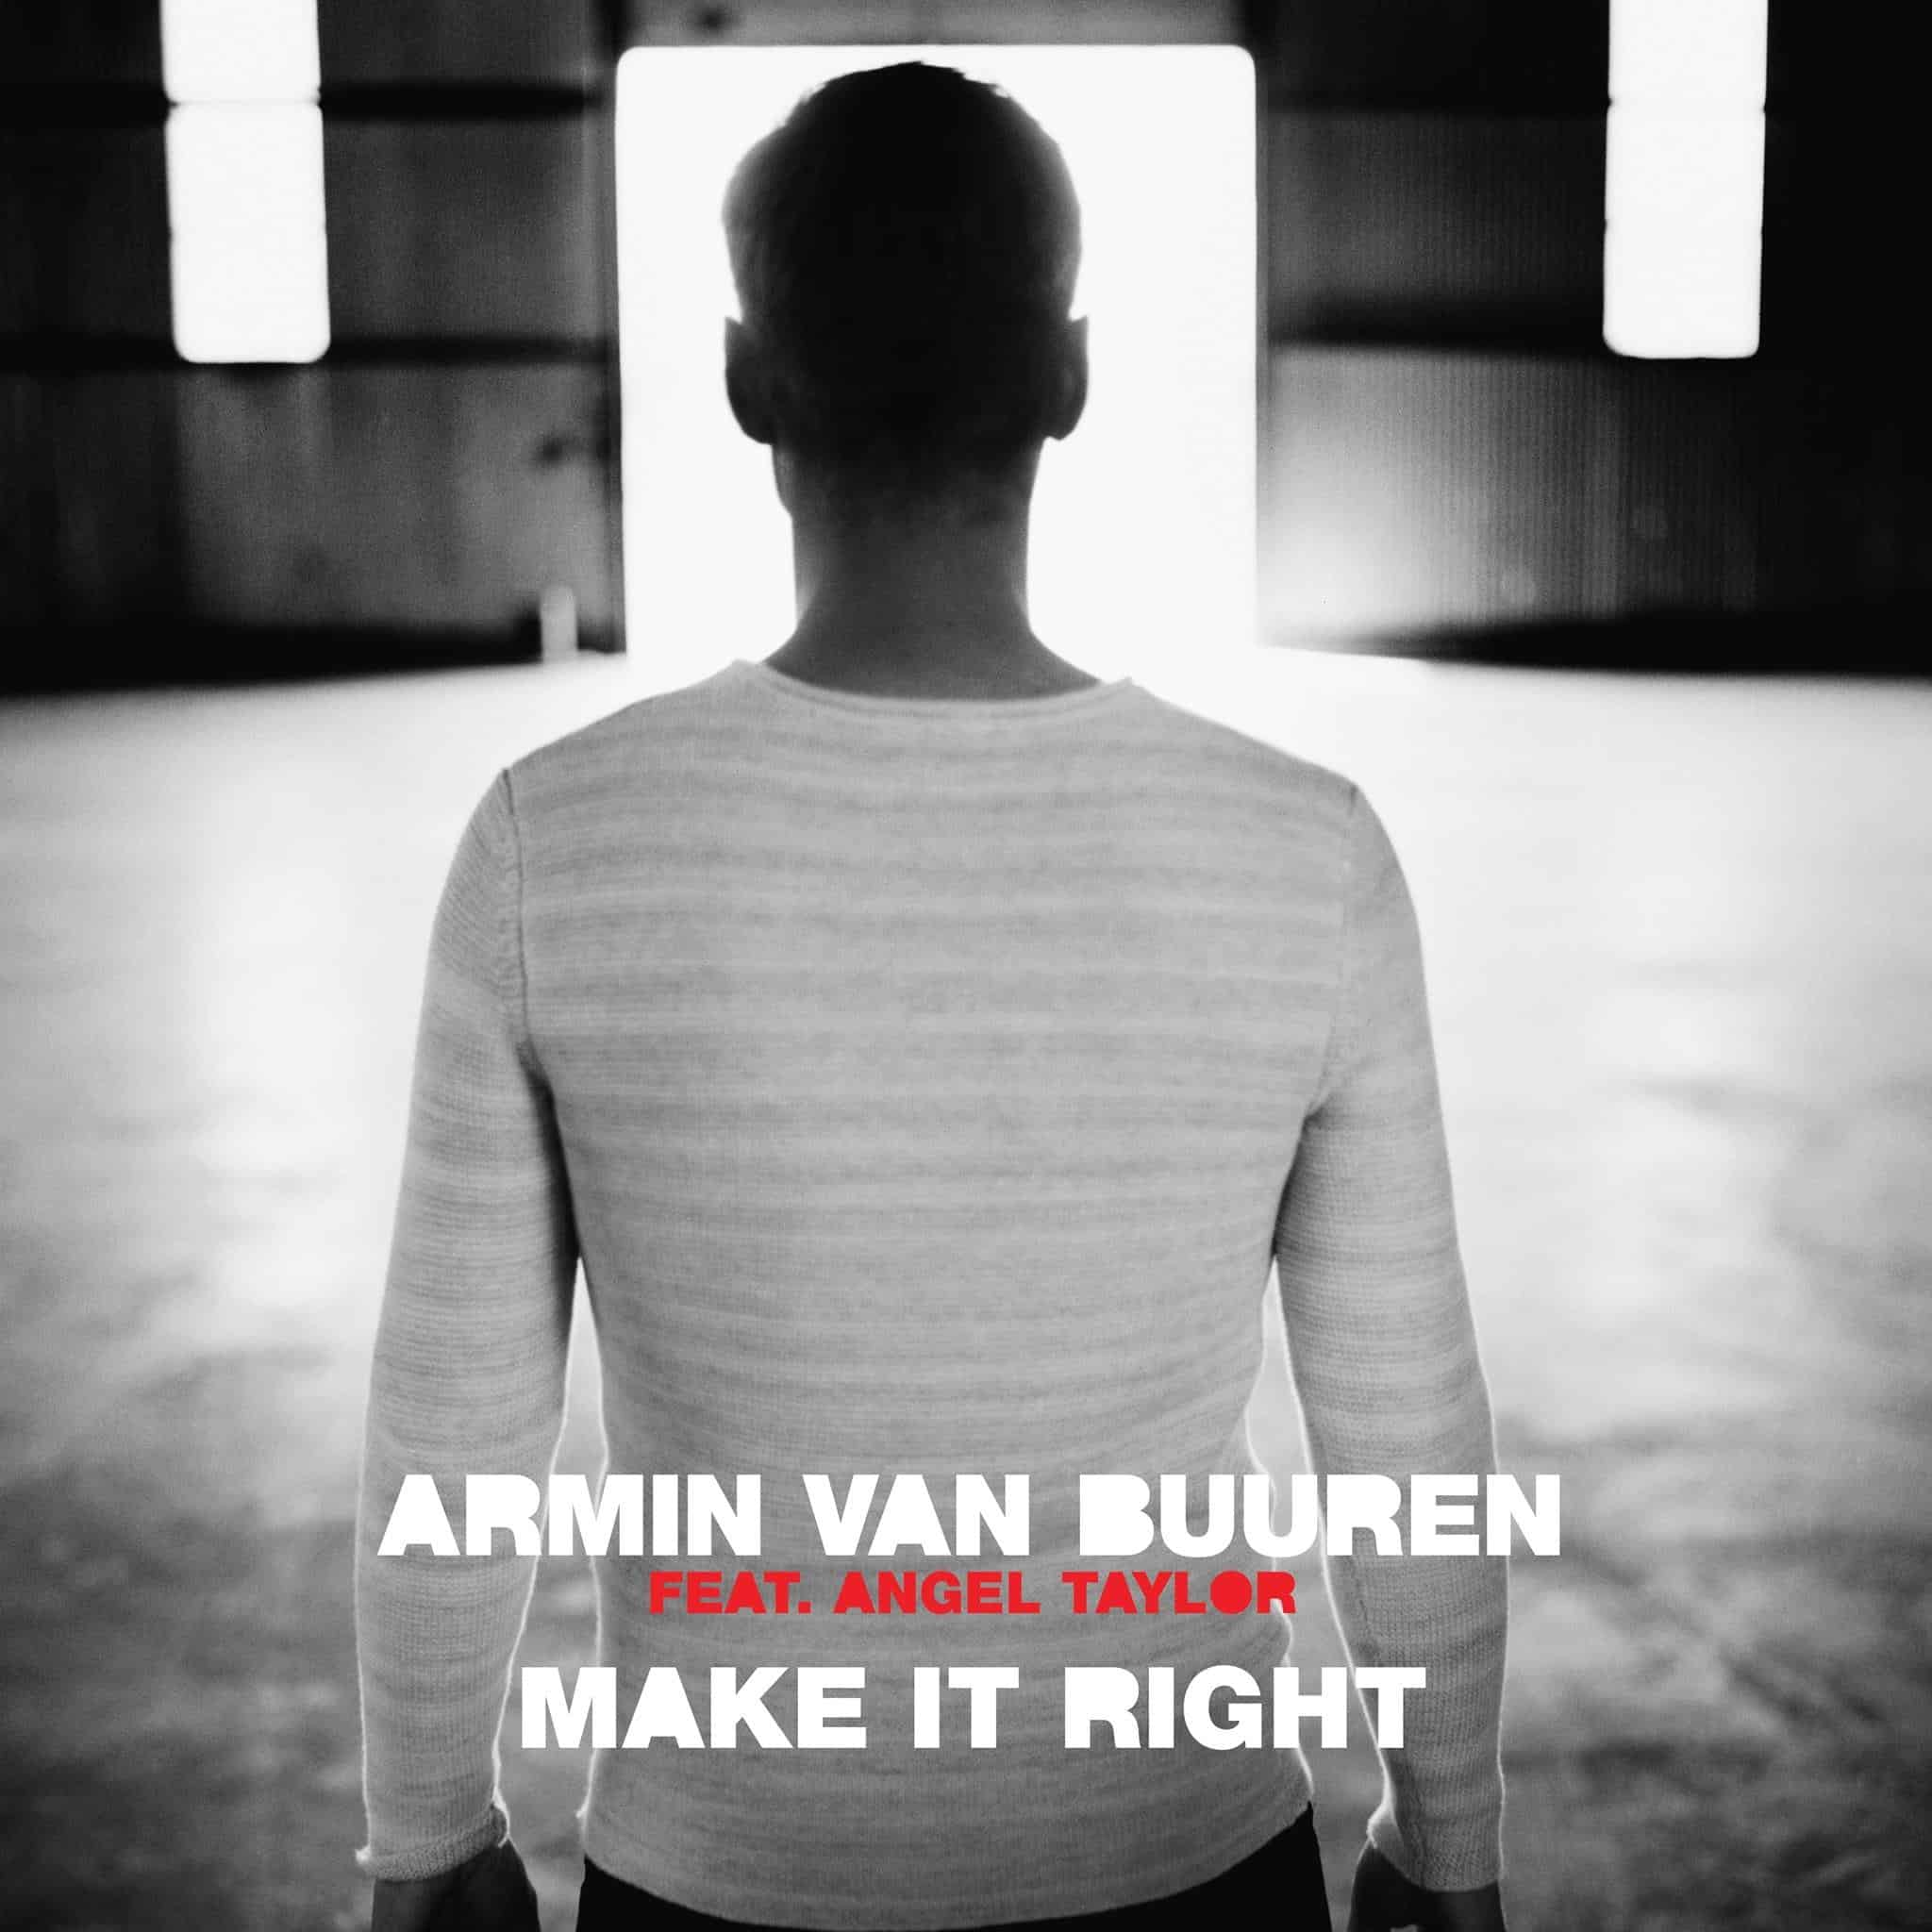 Armin van Buuren feat. Angel Taylor - Make It Right (ilan Bluestone & Maor Levi Remix)